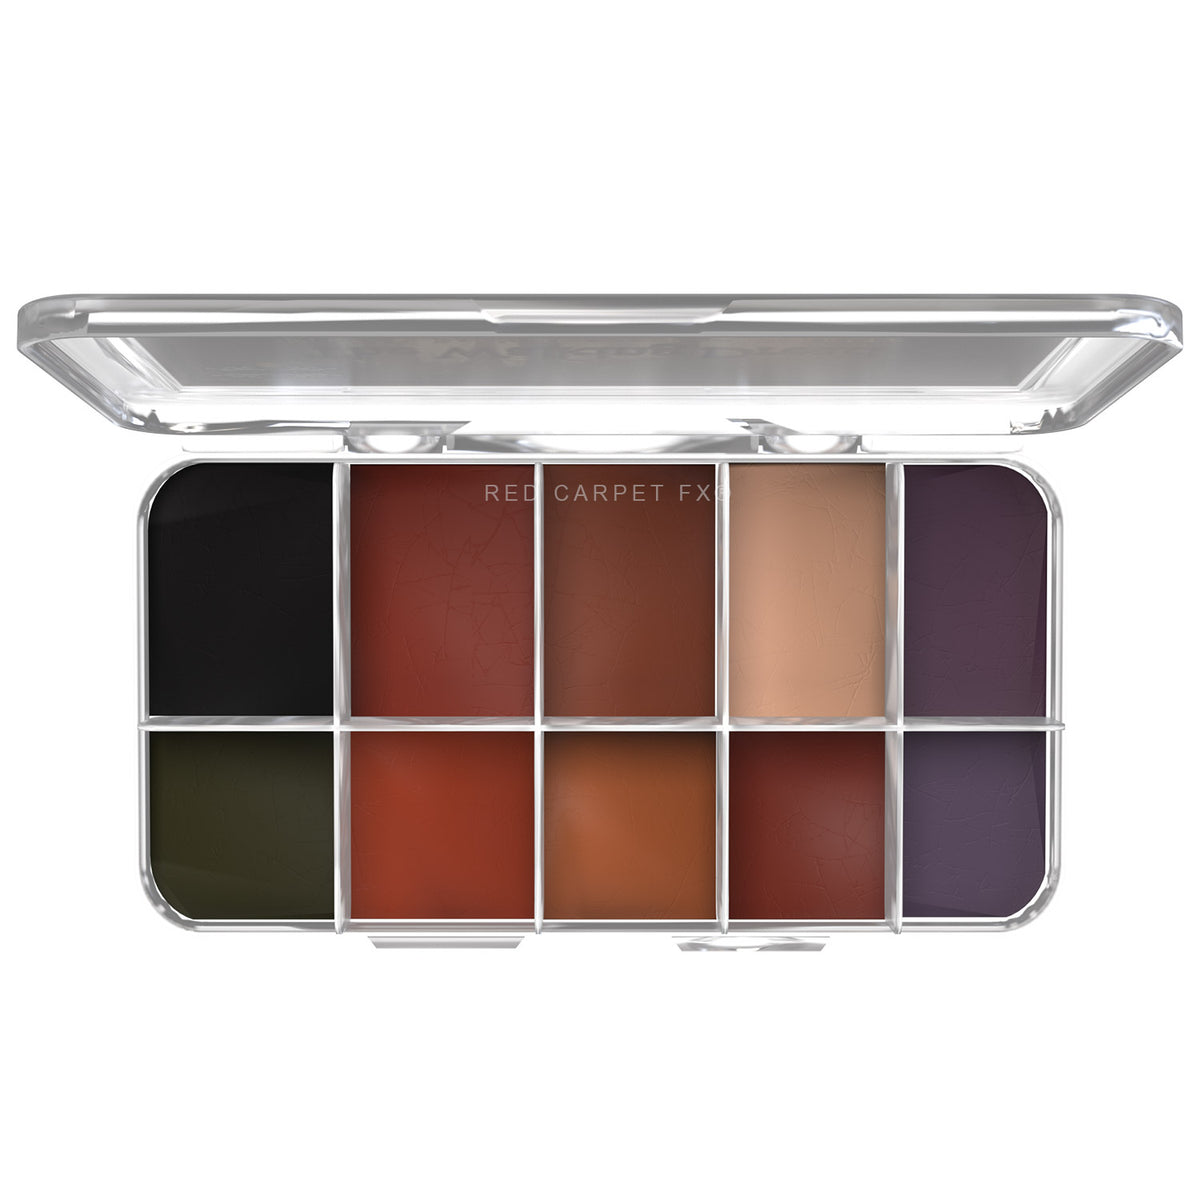 Dashbo The Ultimate Studio Palette - The Walking Dread - Red Carpet FX - Professional Makeup